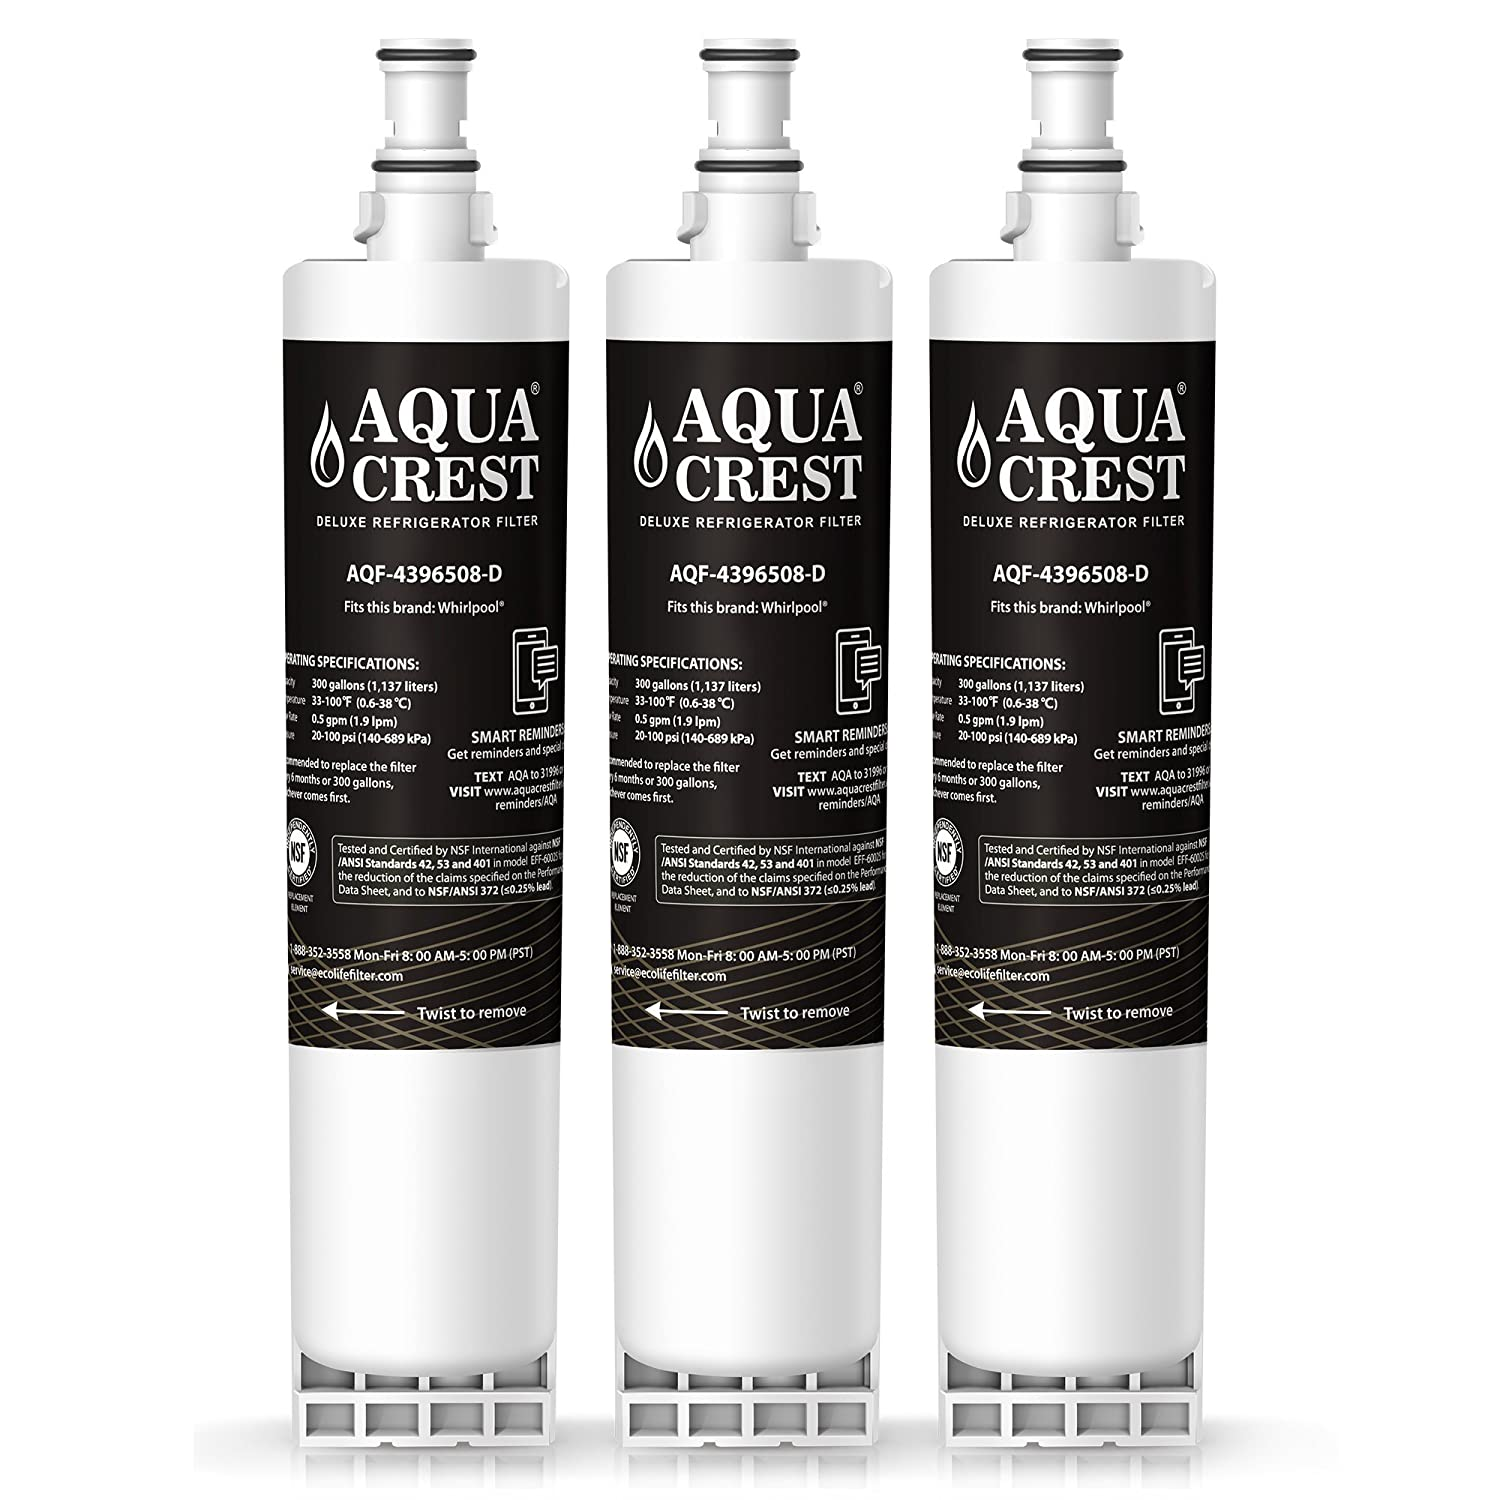 AQUACREST 4396508 NSF 401,53&42 Refrigerator Water Filter, Compatible with  Whirlpool 4396508 4396510, Everydrop Filter 5, 46-9010, EDR5RXD1,PUR